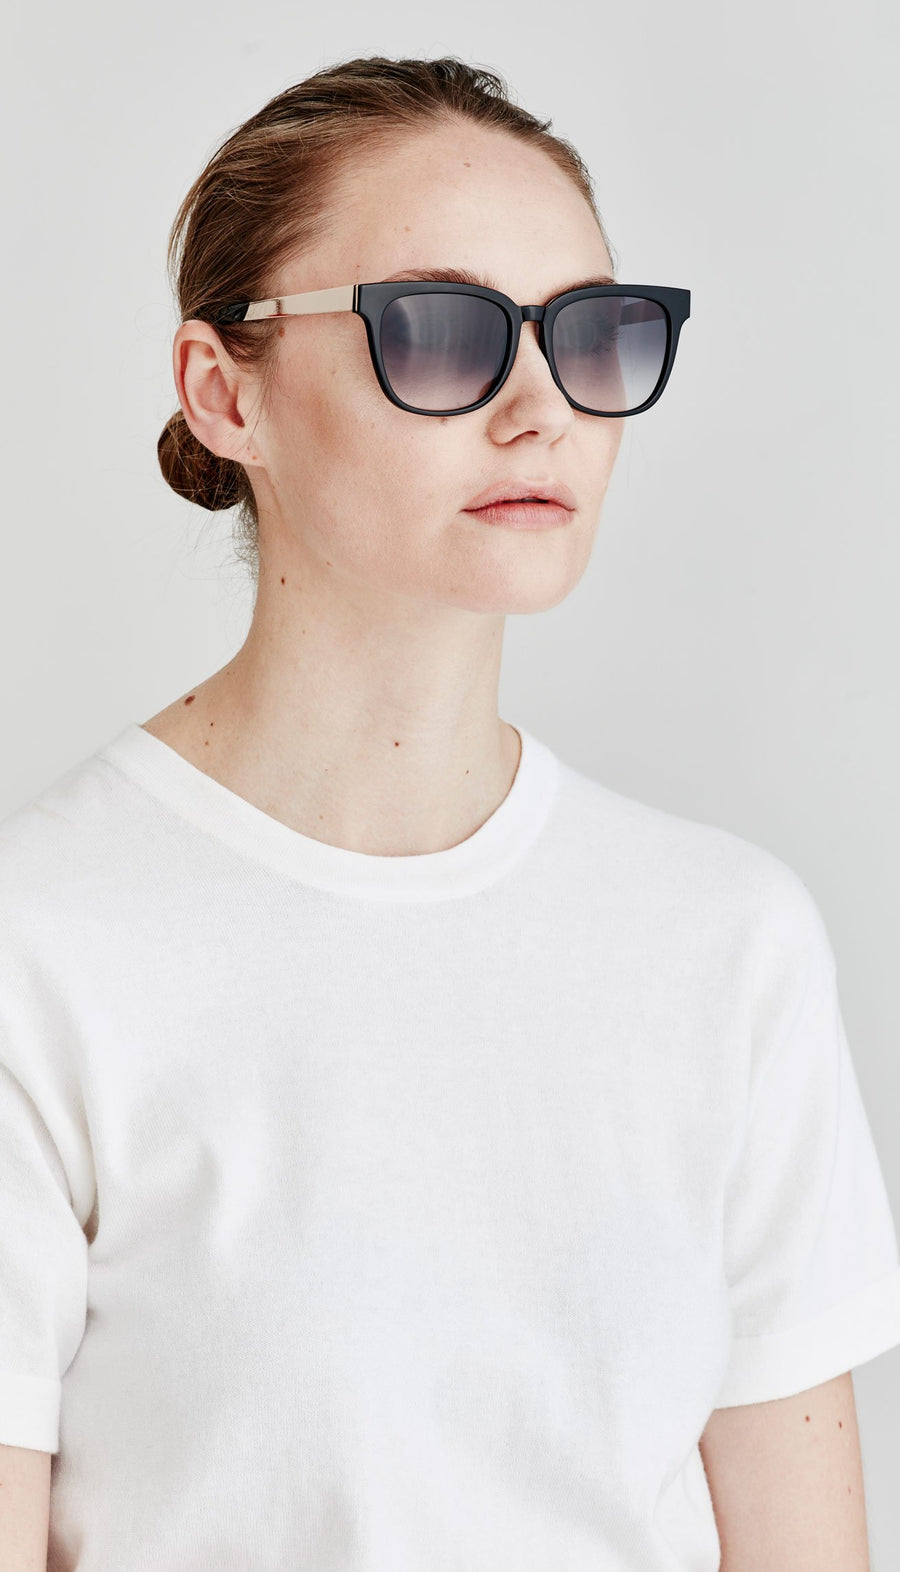 Juliette Hogan | No. 05 Eyewear Black/Gold